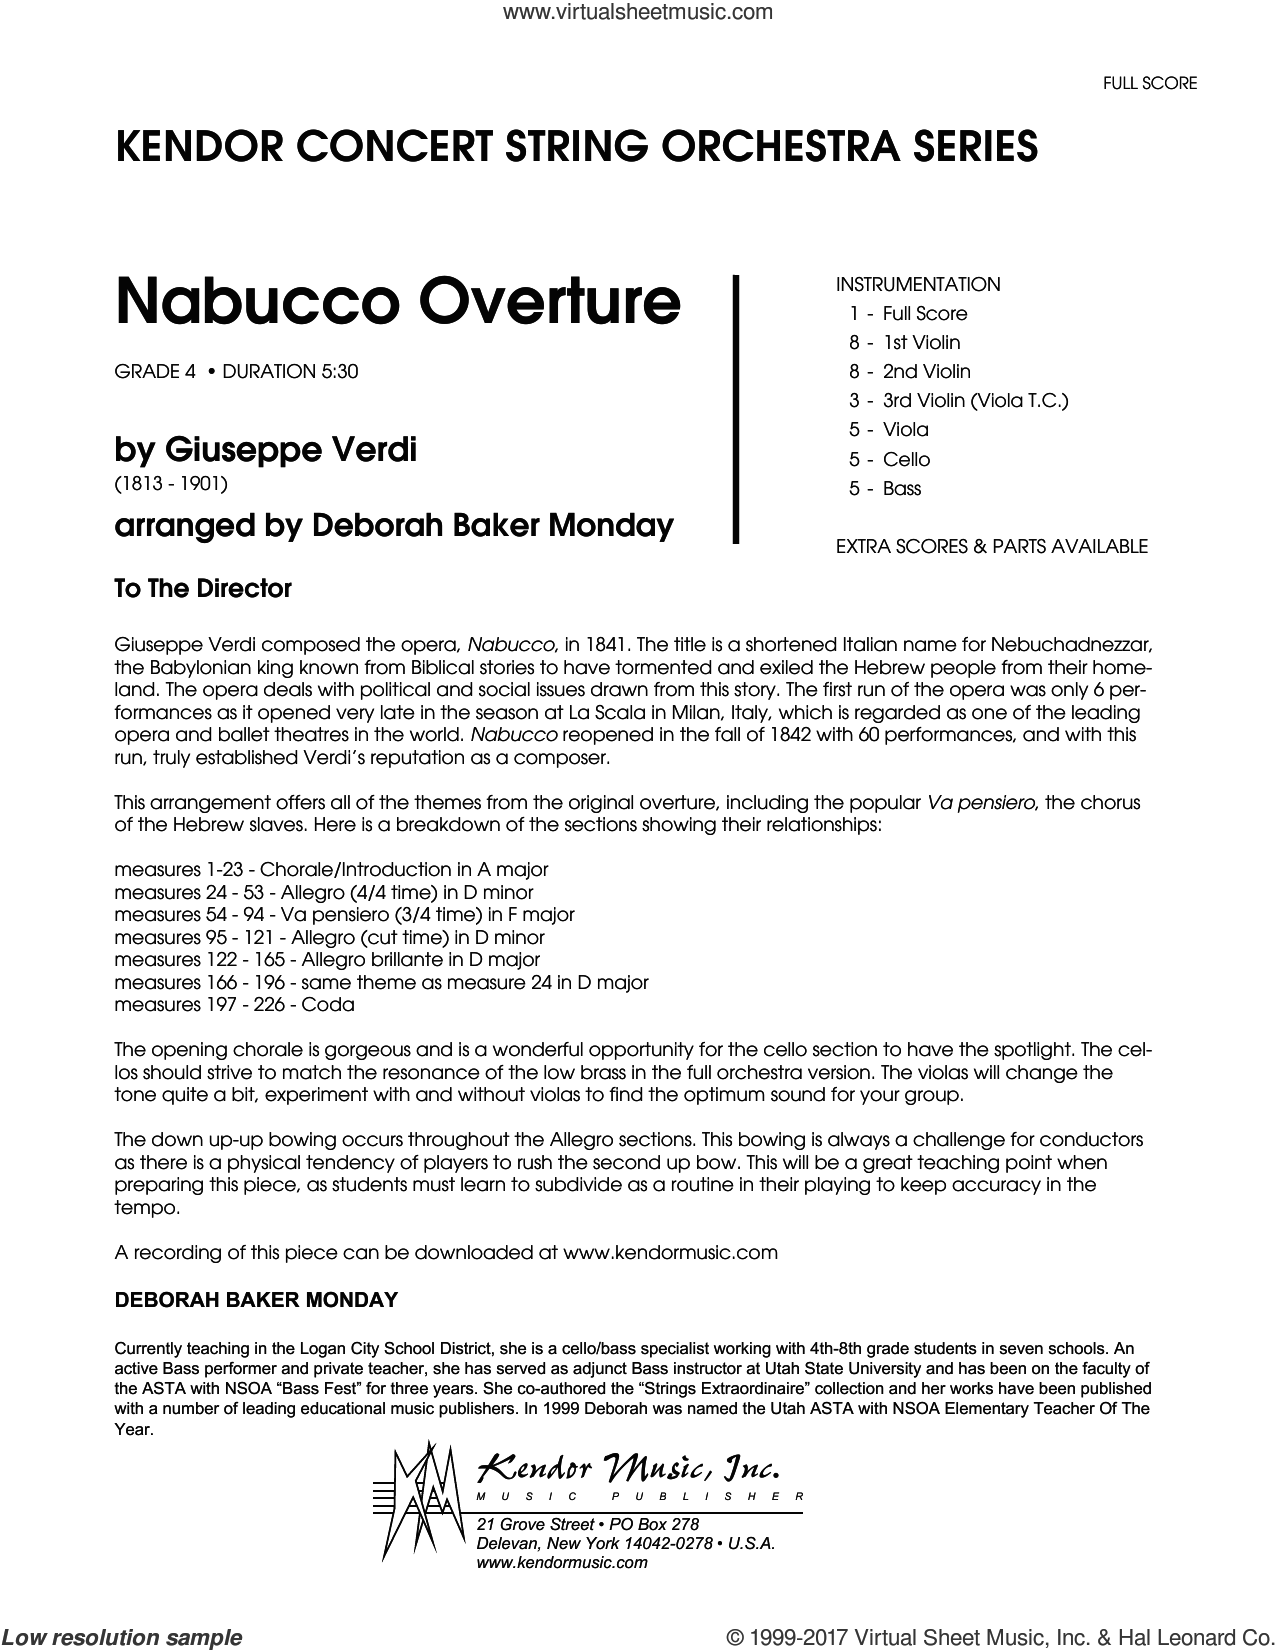 Nabucco Overture (COMPLETE) sheet music for orchestra by Deborah Baker Monday and Giuseppe Verdi, intermediate orchestra. Score Image Preview.